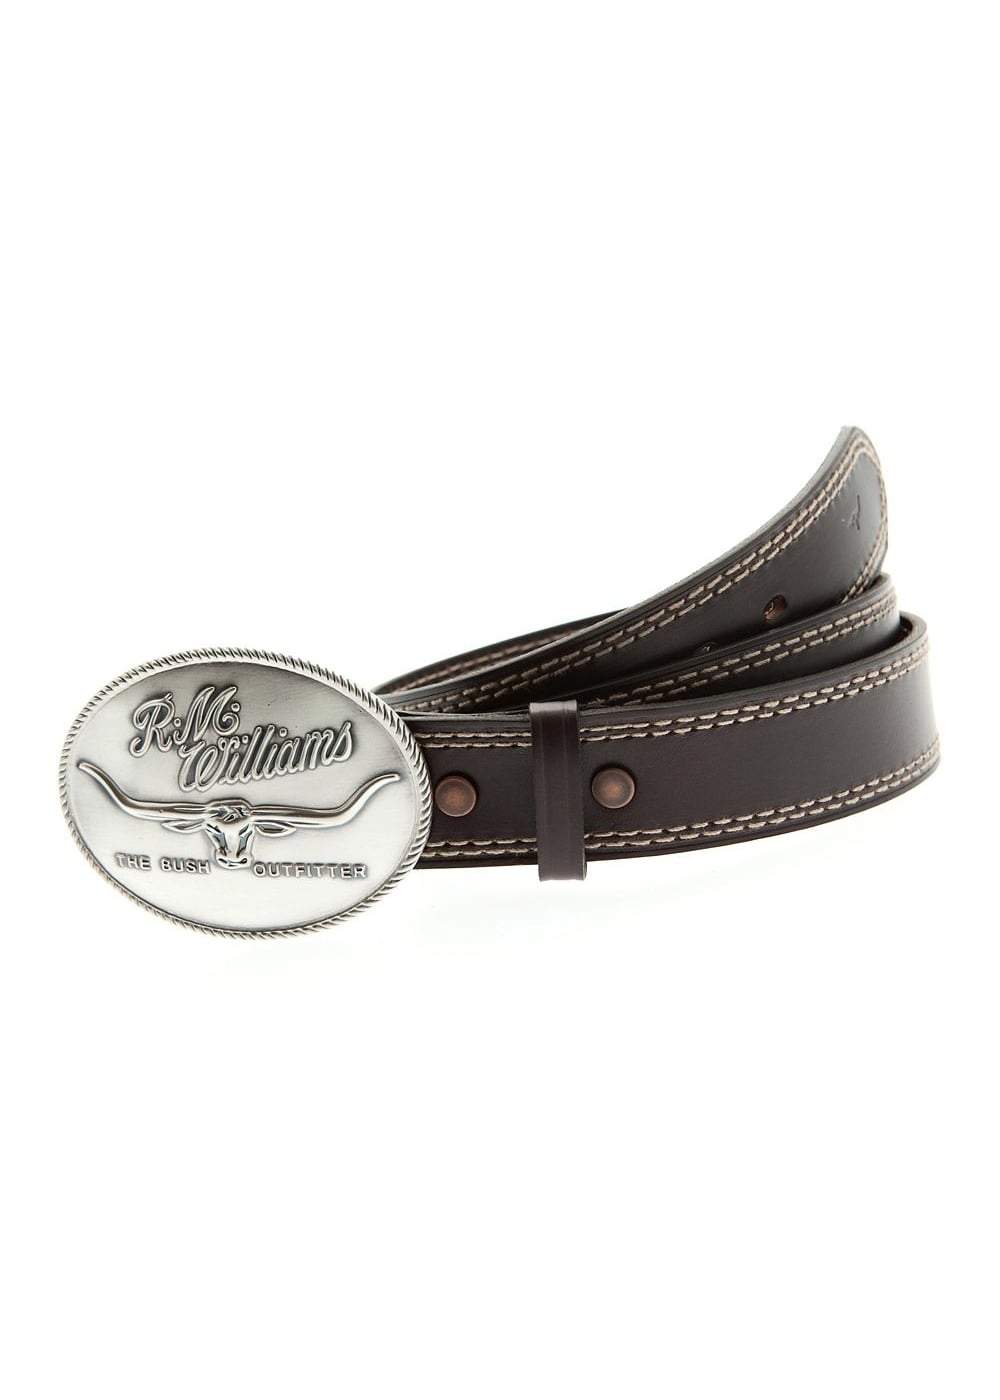 RM Williams Saddle Stitched 1.5 Belt Large Image